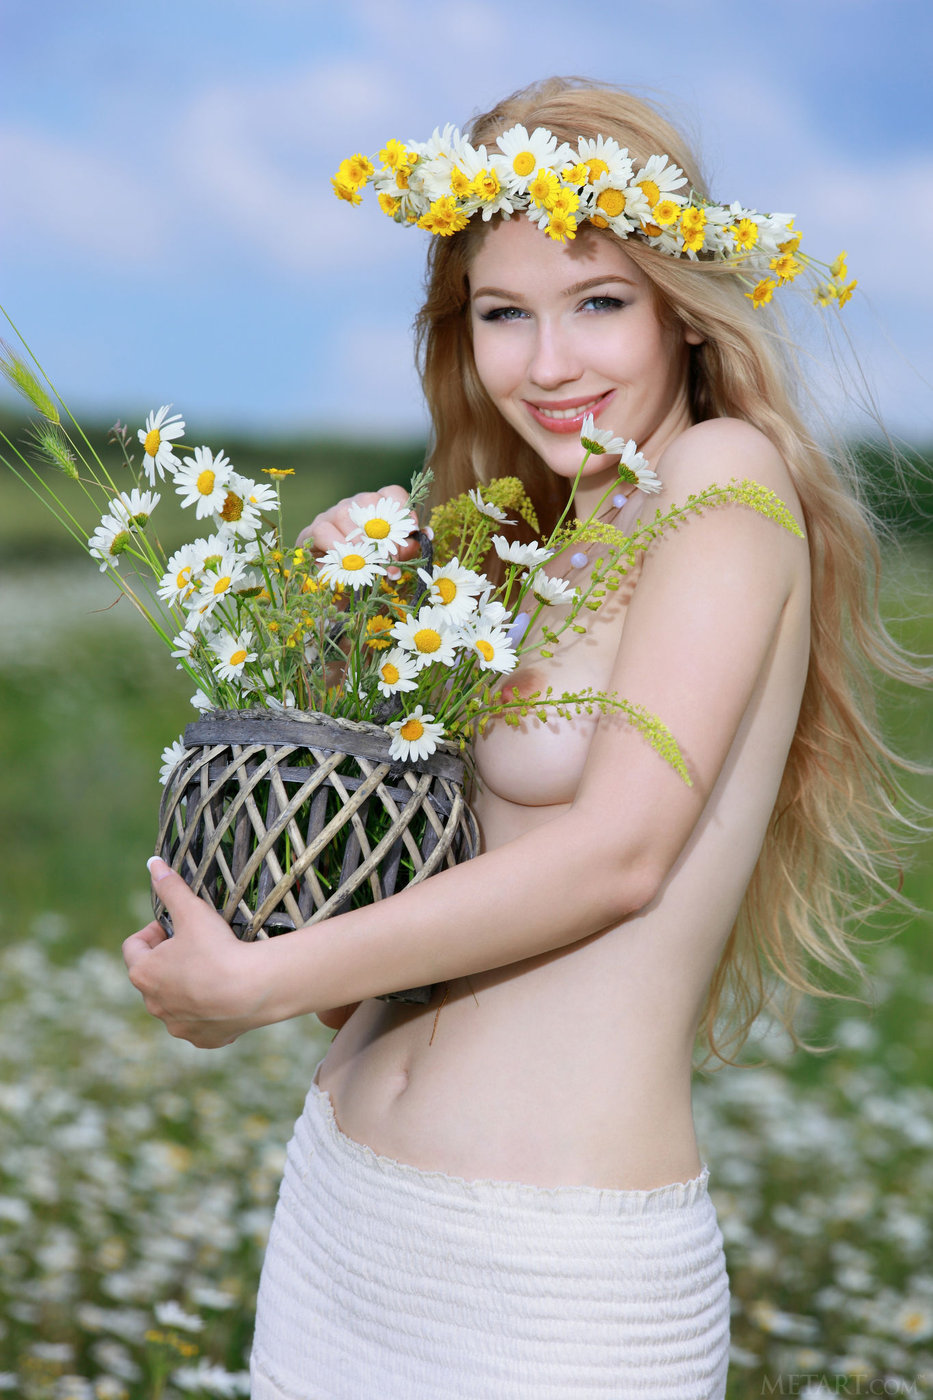 Flower-loving blond-haired nympho posing in the middle of a field